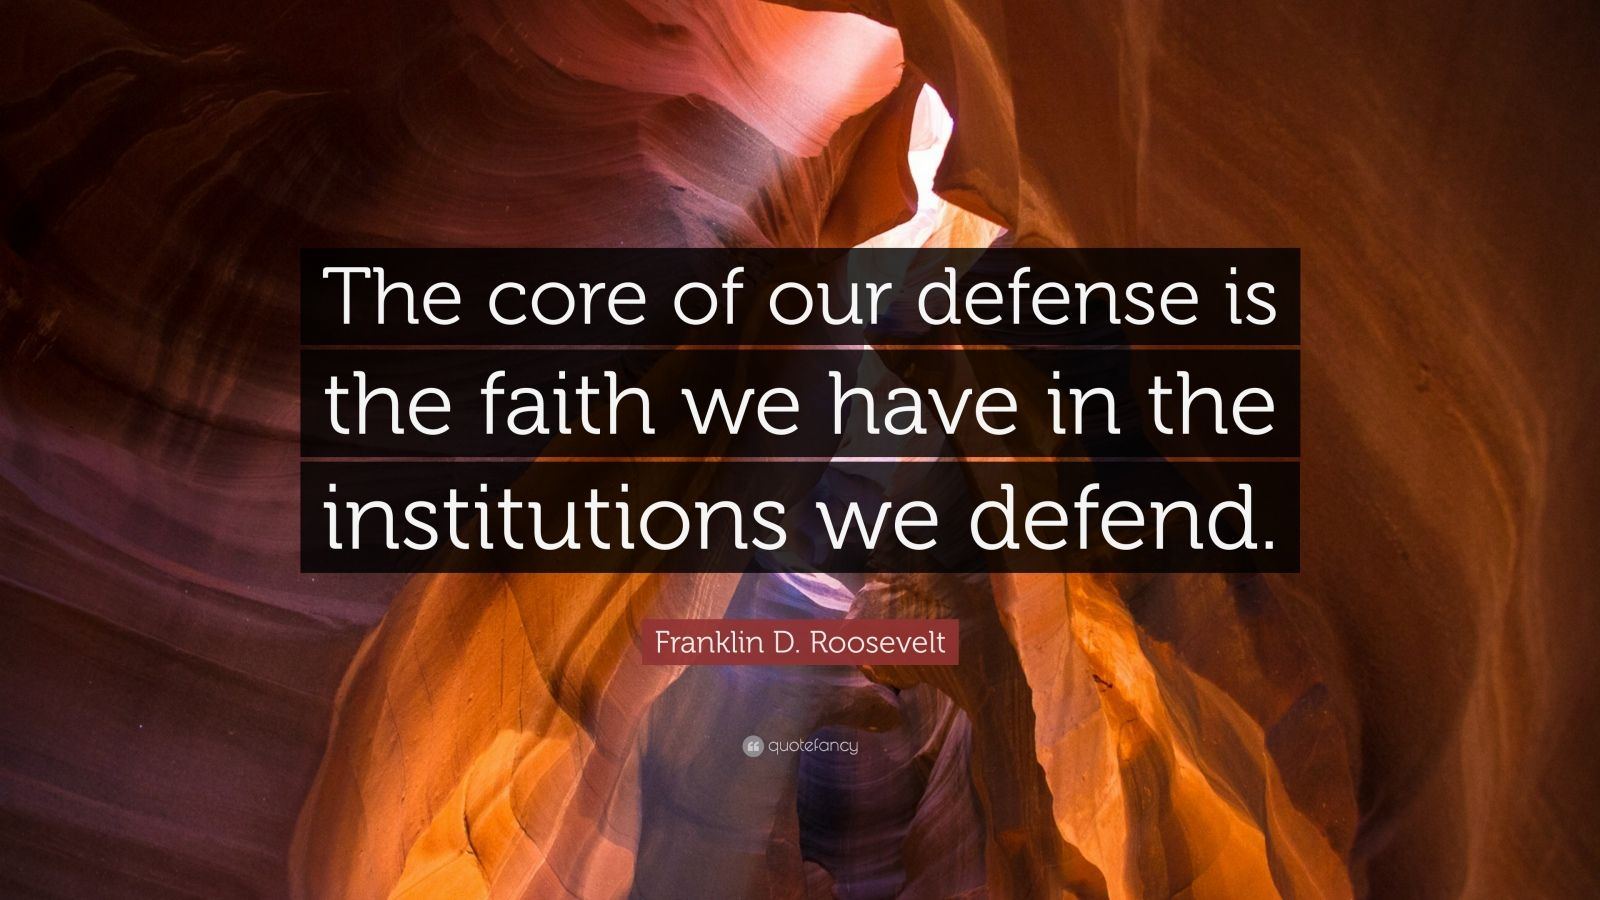 In defense of our faith beautiful